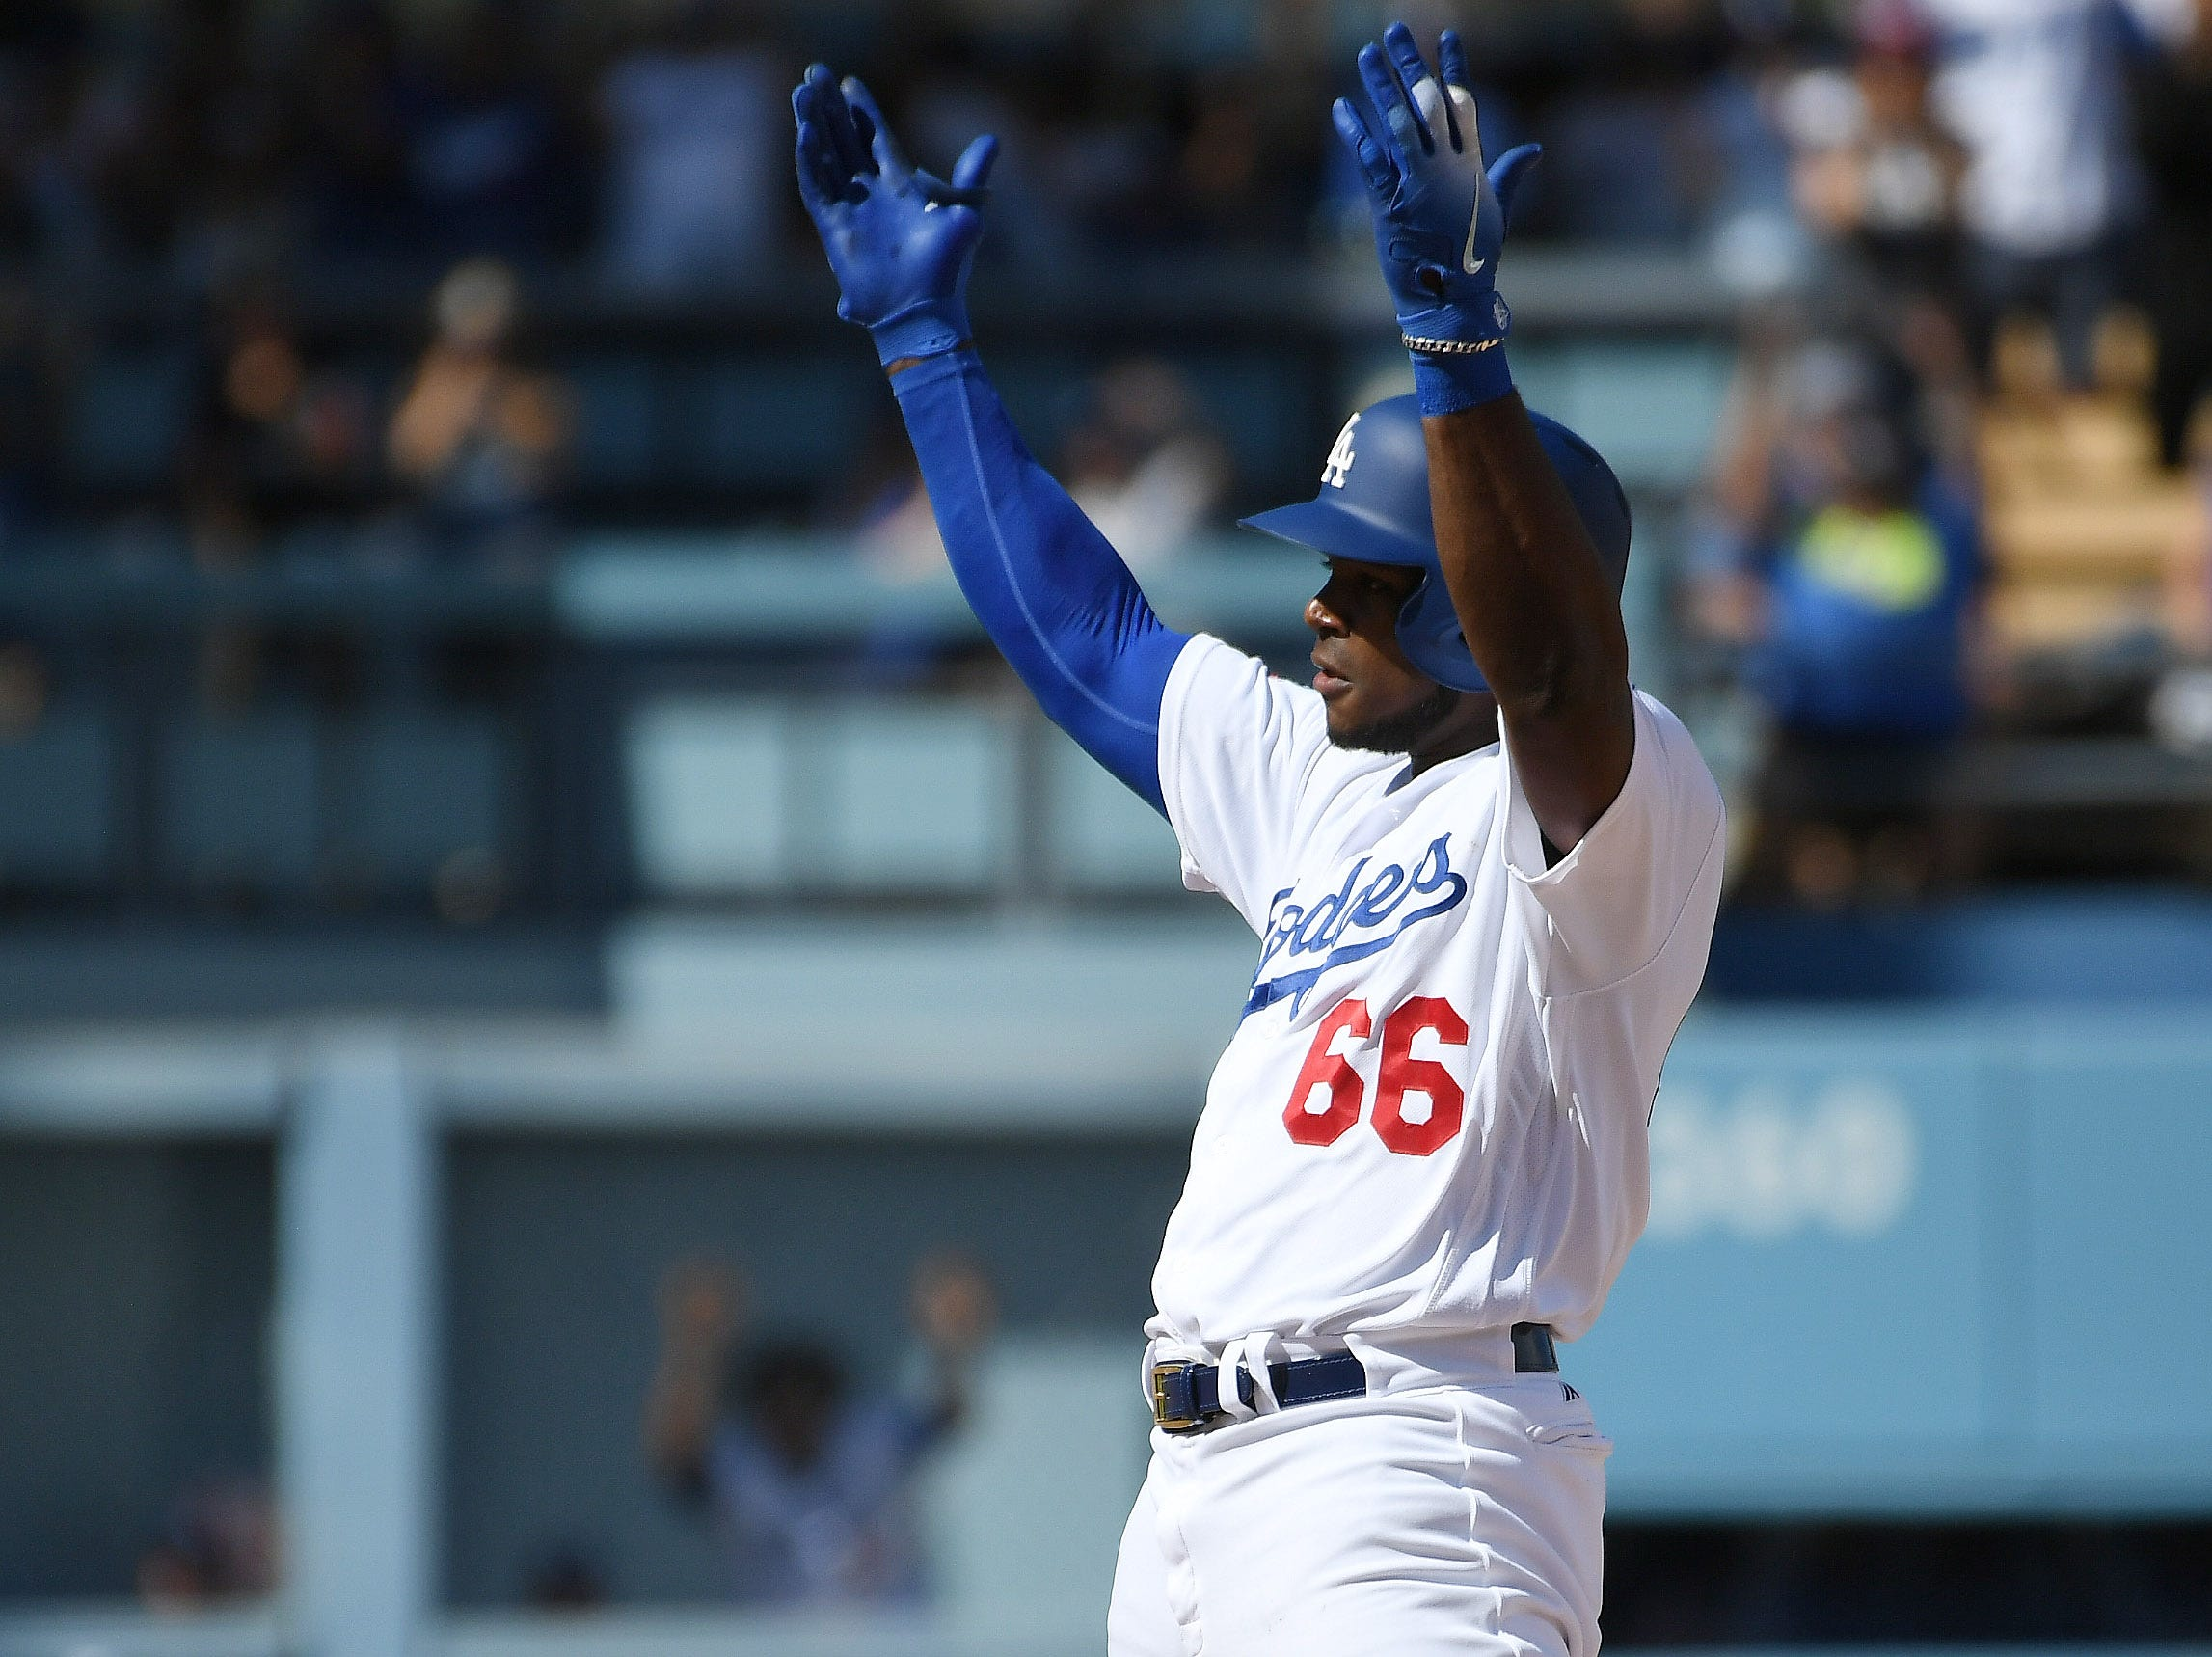 Dodgers right fielder Yasiel Puig reacts after hitting a double in the fourth inning.